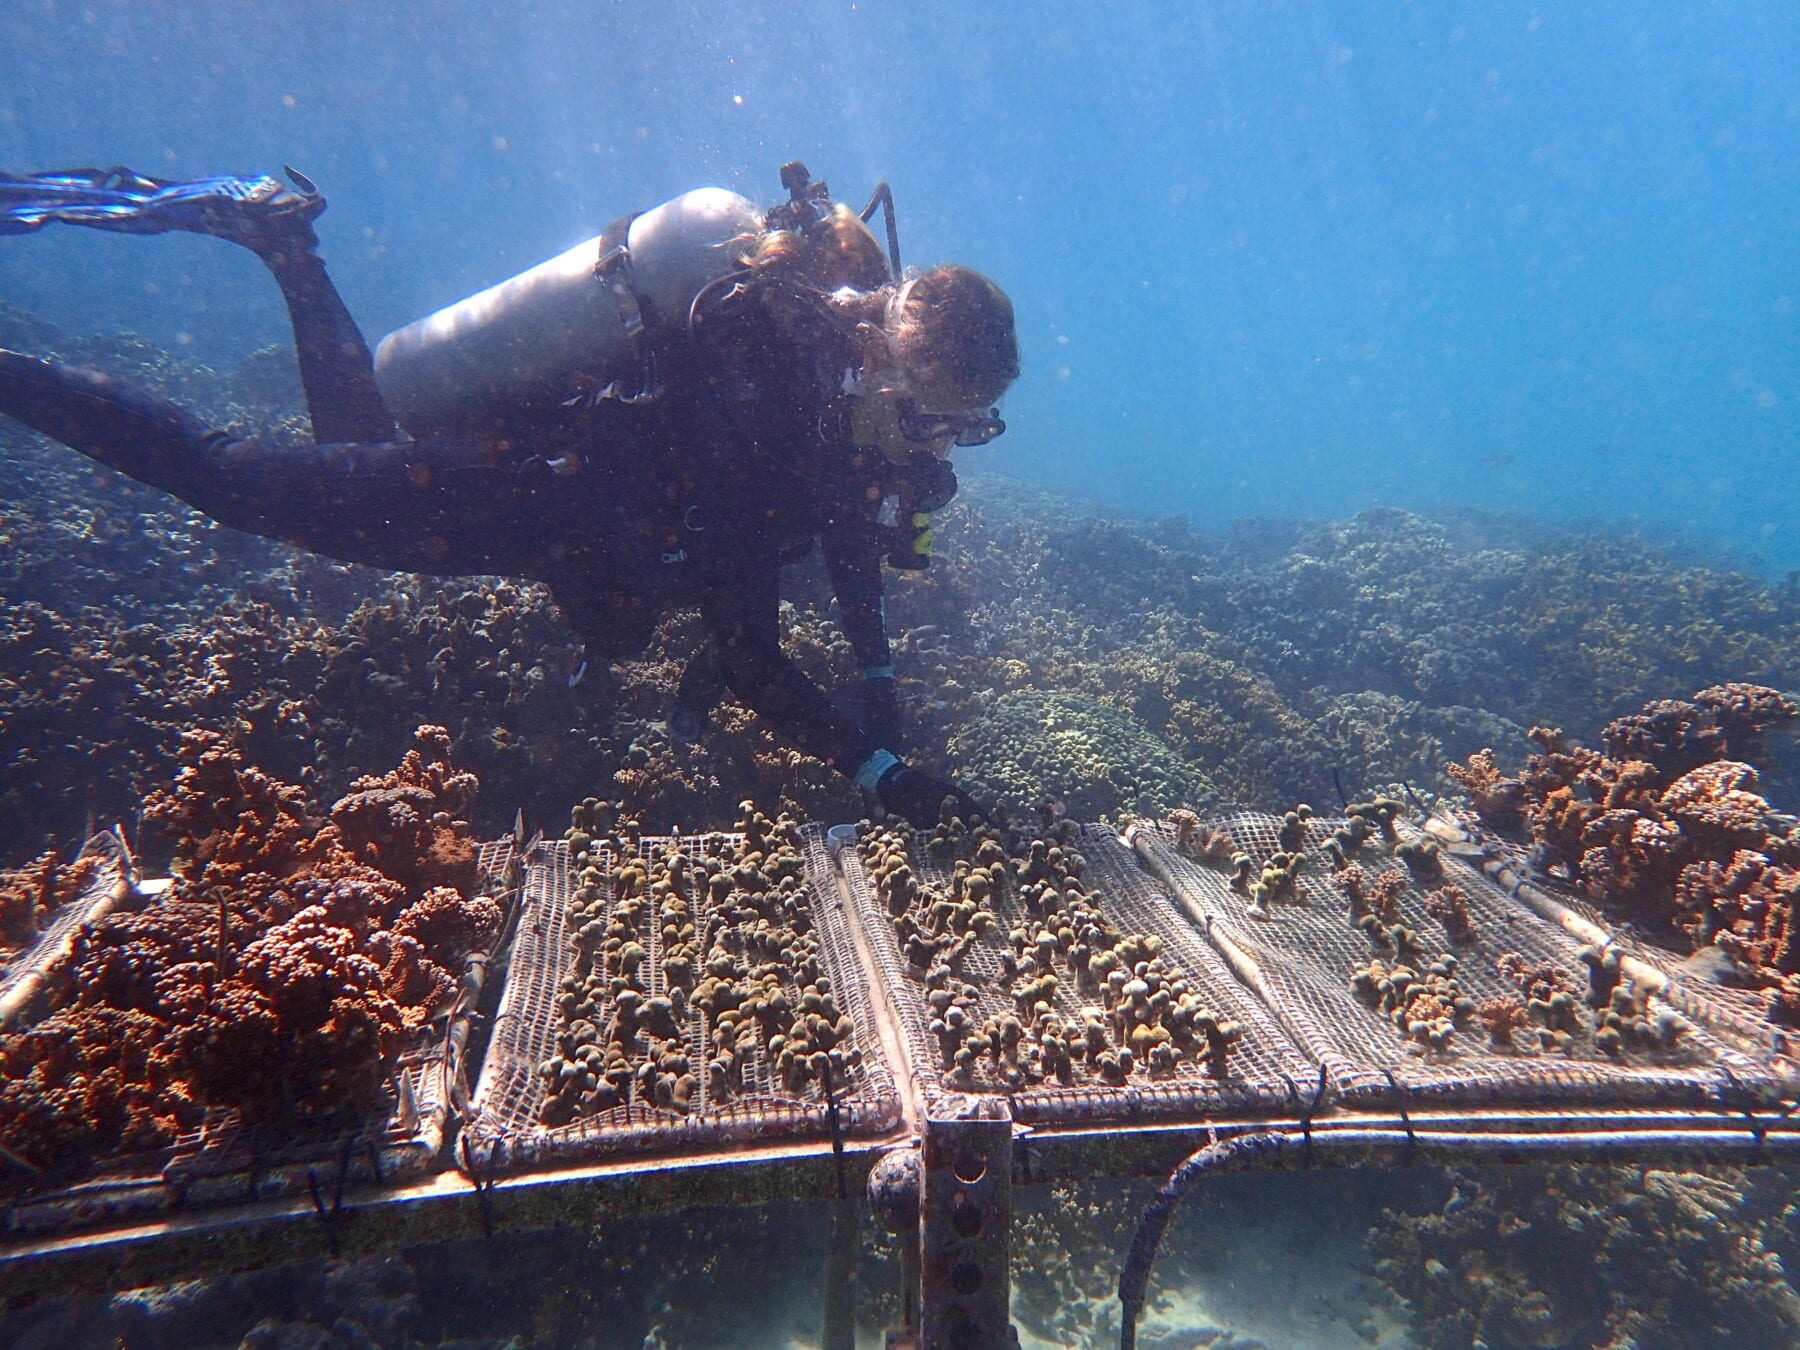 Penn biologist Katie Barott and colleagues found that corals maintain their ability to resist bleaching even when transplanted to a new reef. (Image: S. Matsuda)